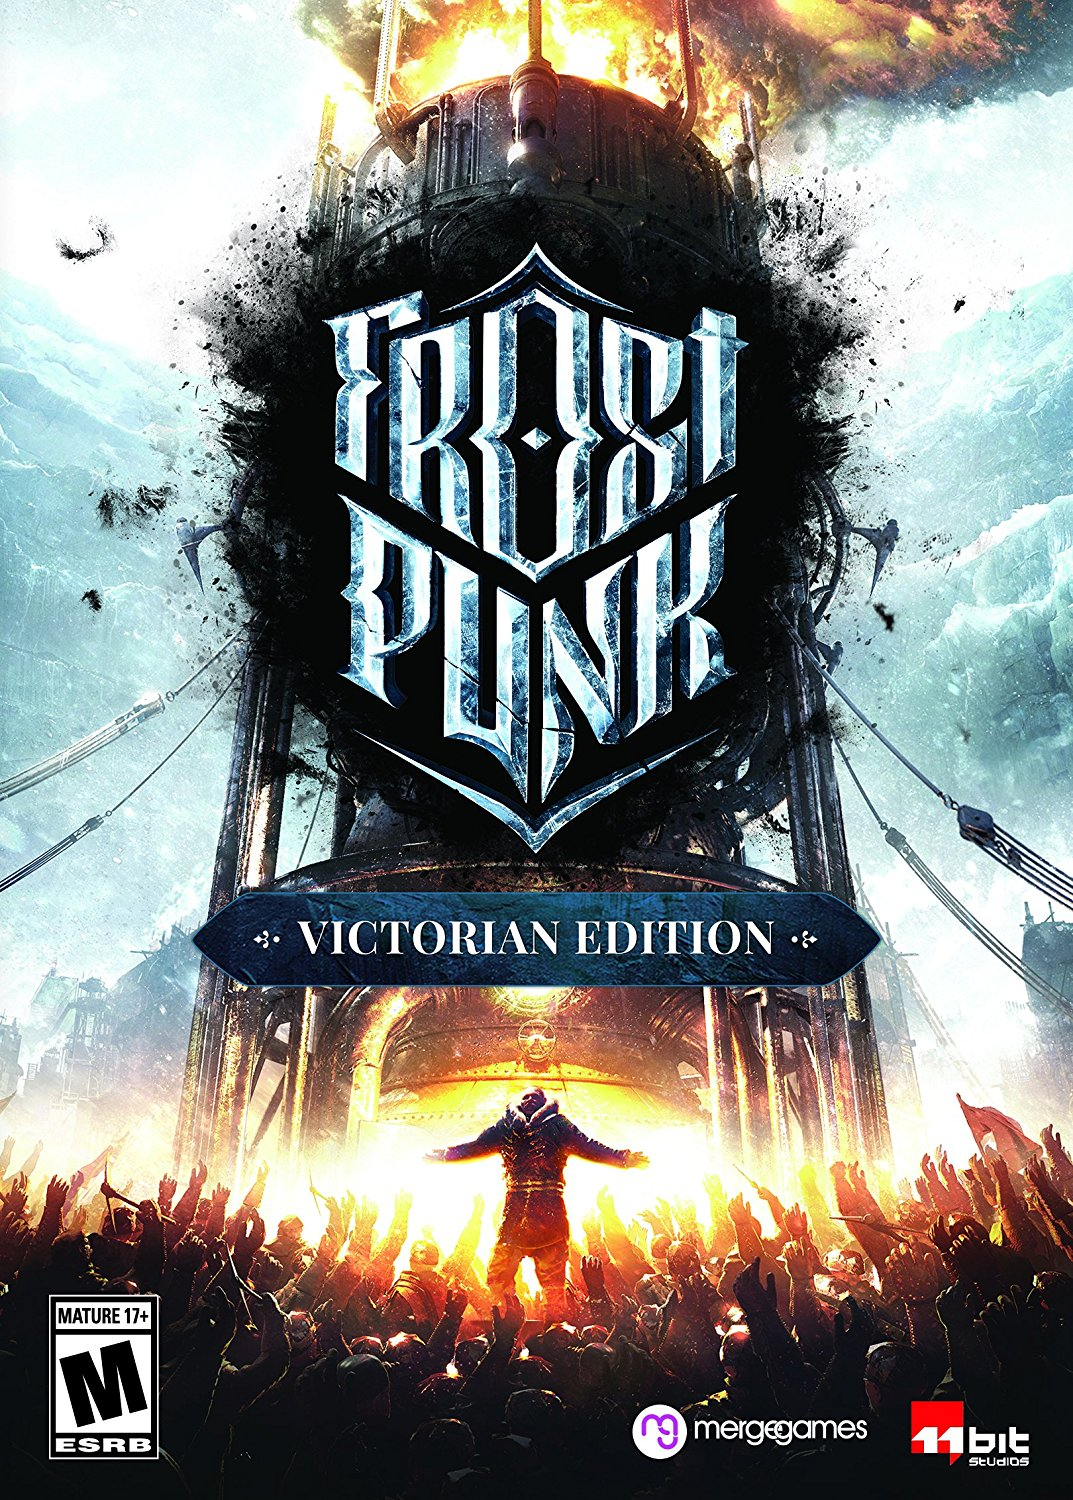 https://img5.downloadha.com/hosein/files/2018/04/Frostpunk-pc-cover-large.jpg